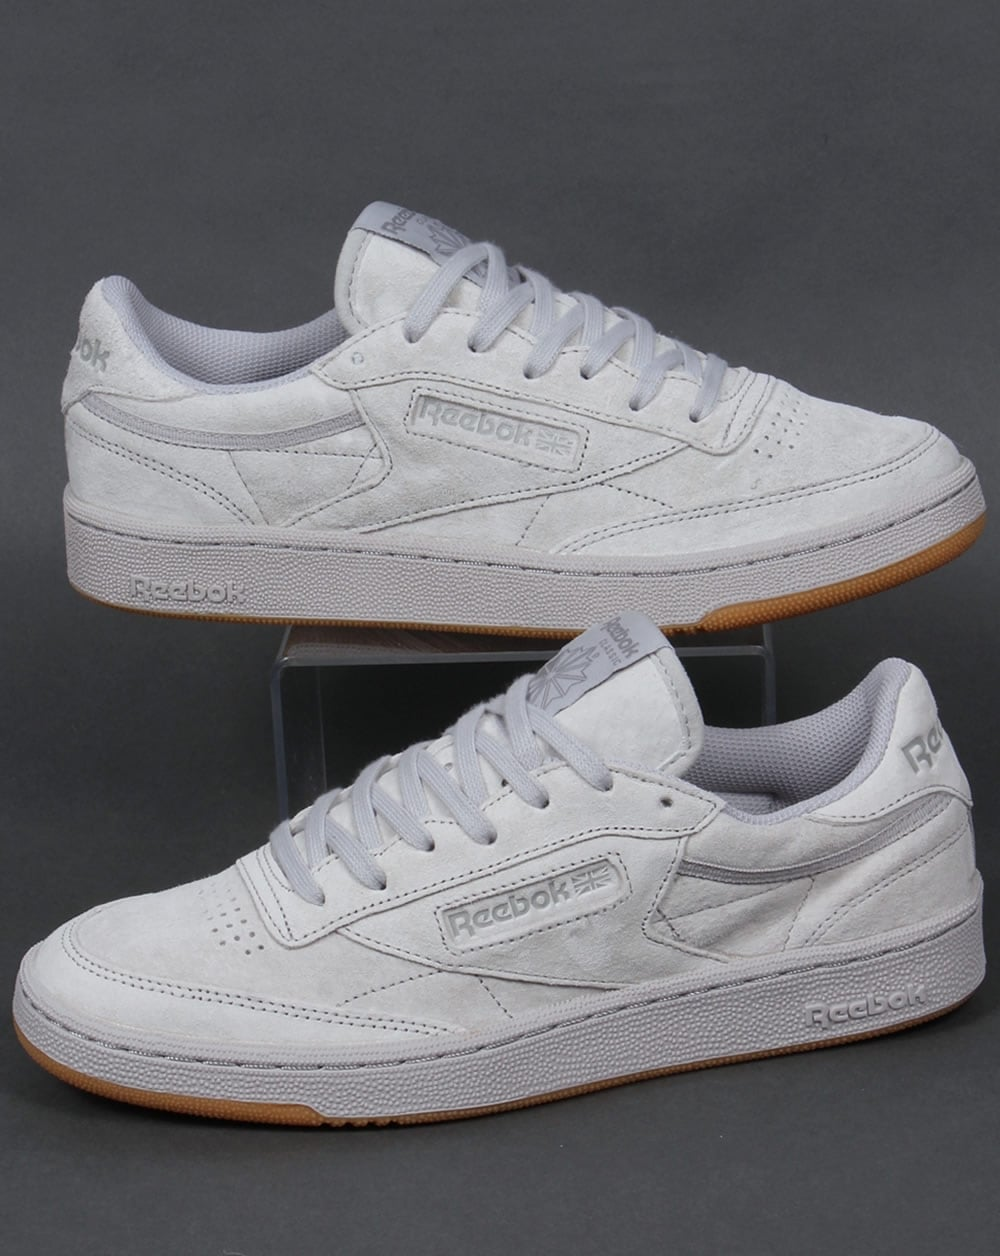 Reebok Club C 85 Trainers Steel Carbon Gum Shoe Gum Suede Mens